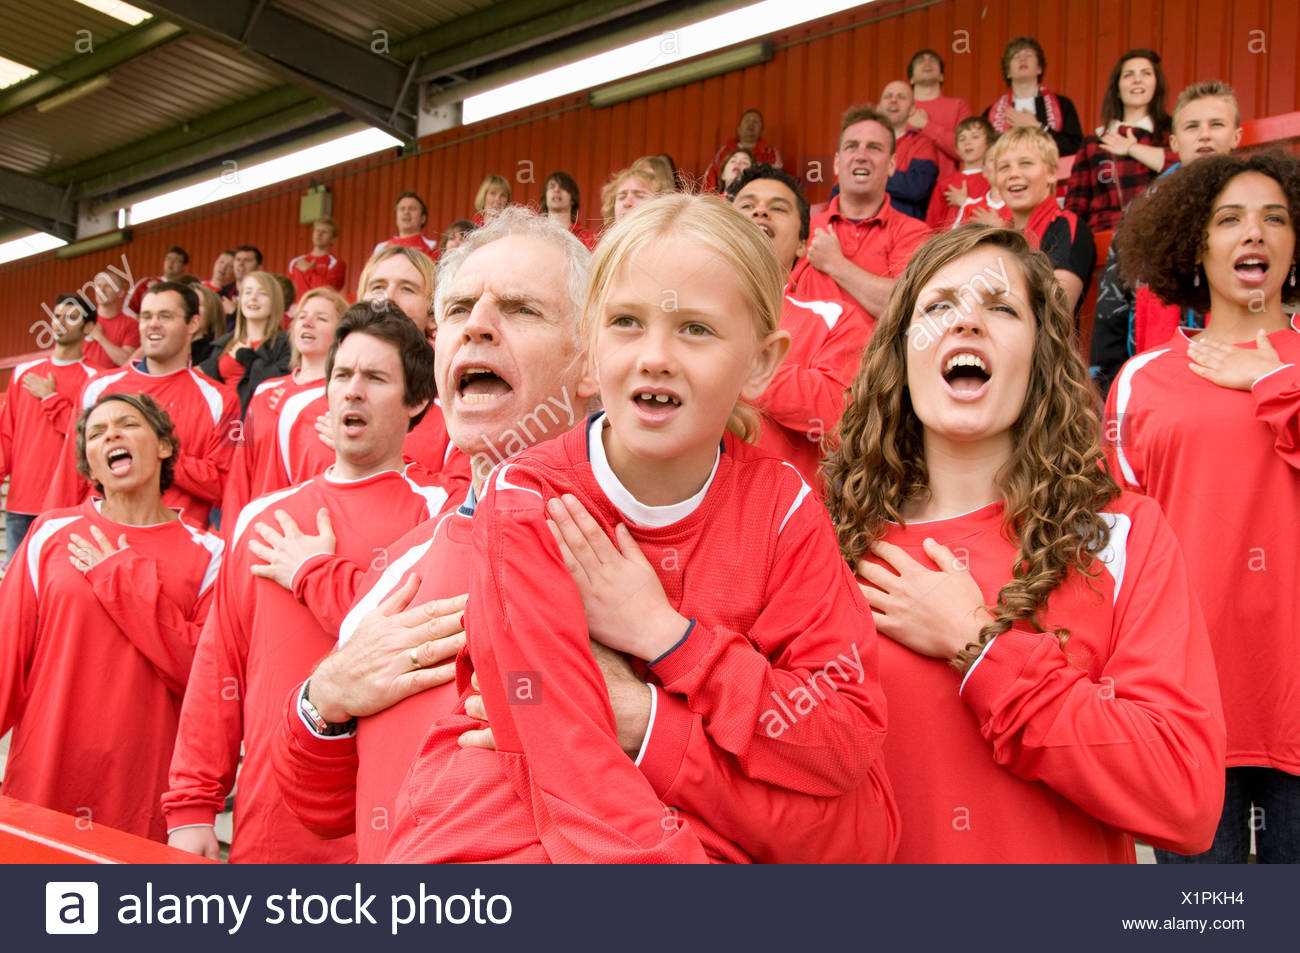 Fans singing anthem at football match Stock Photo